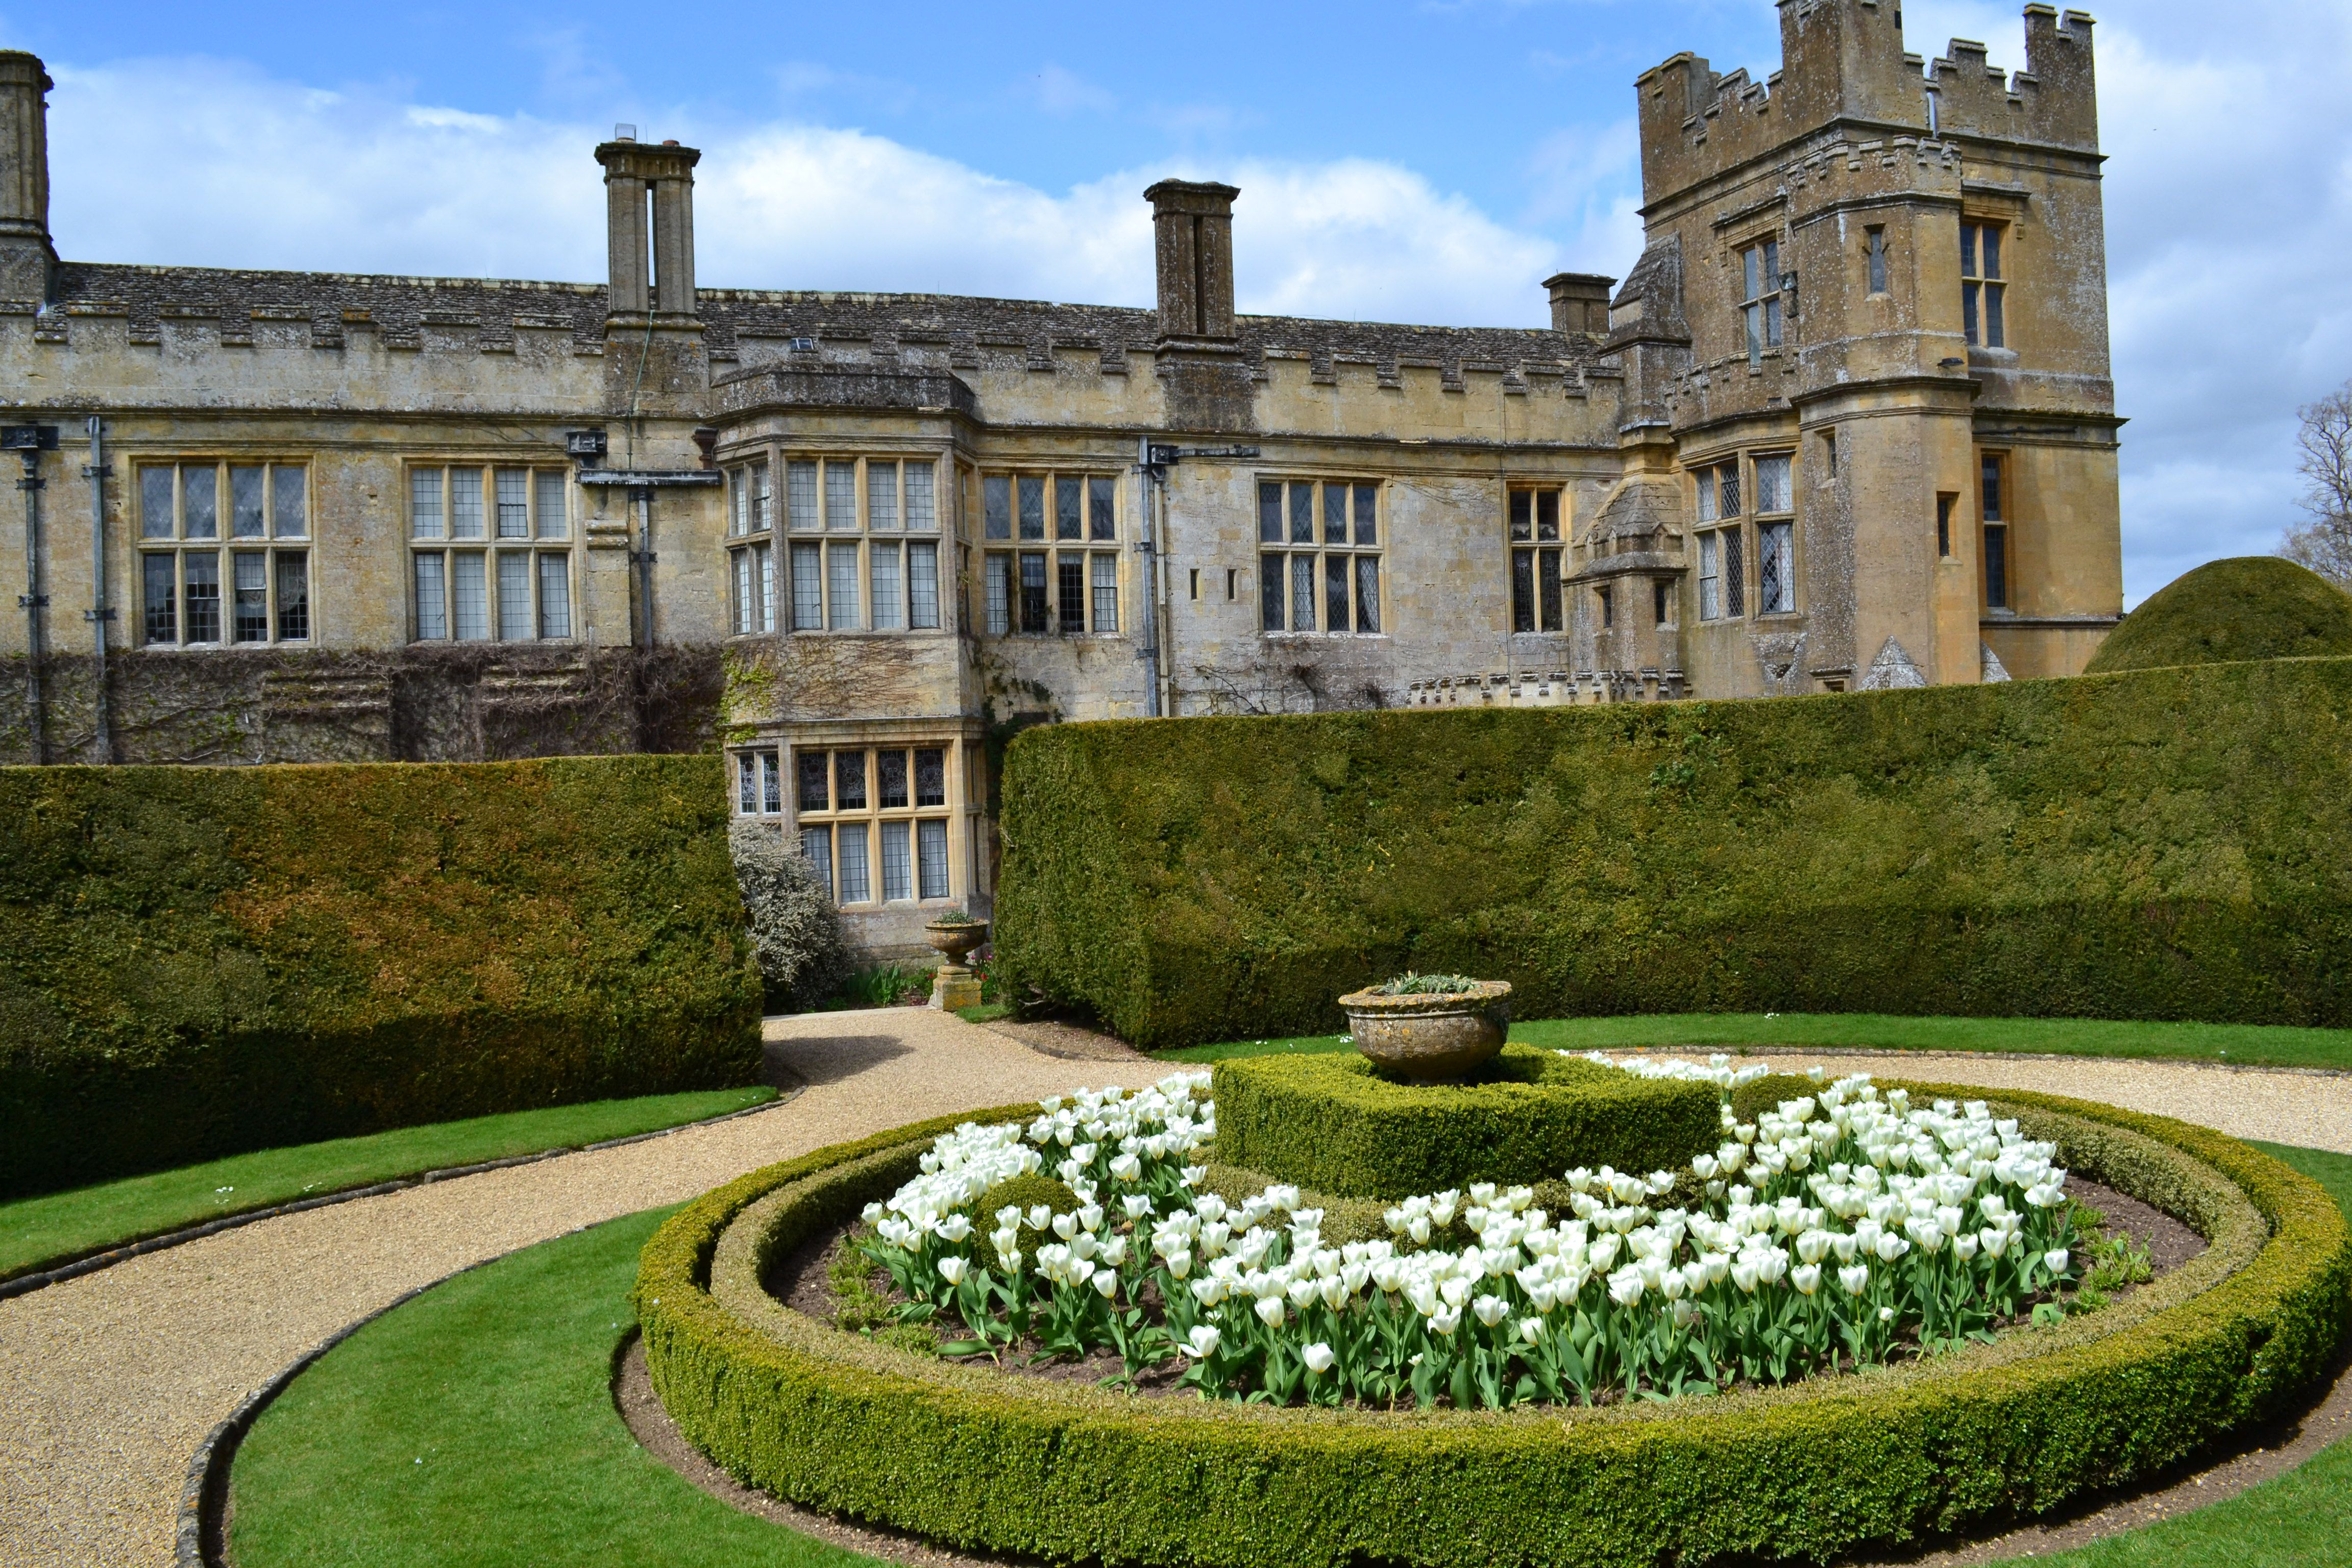 Sudeley Castle & Gardens, Winchcombe, Gloucestershire, England